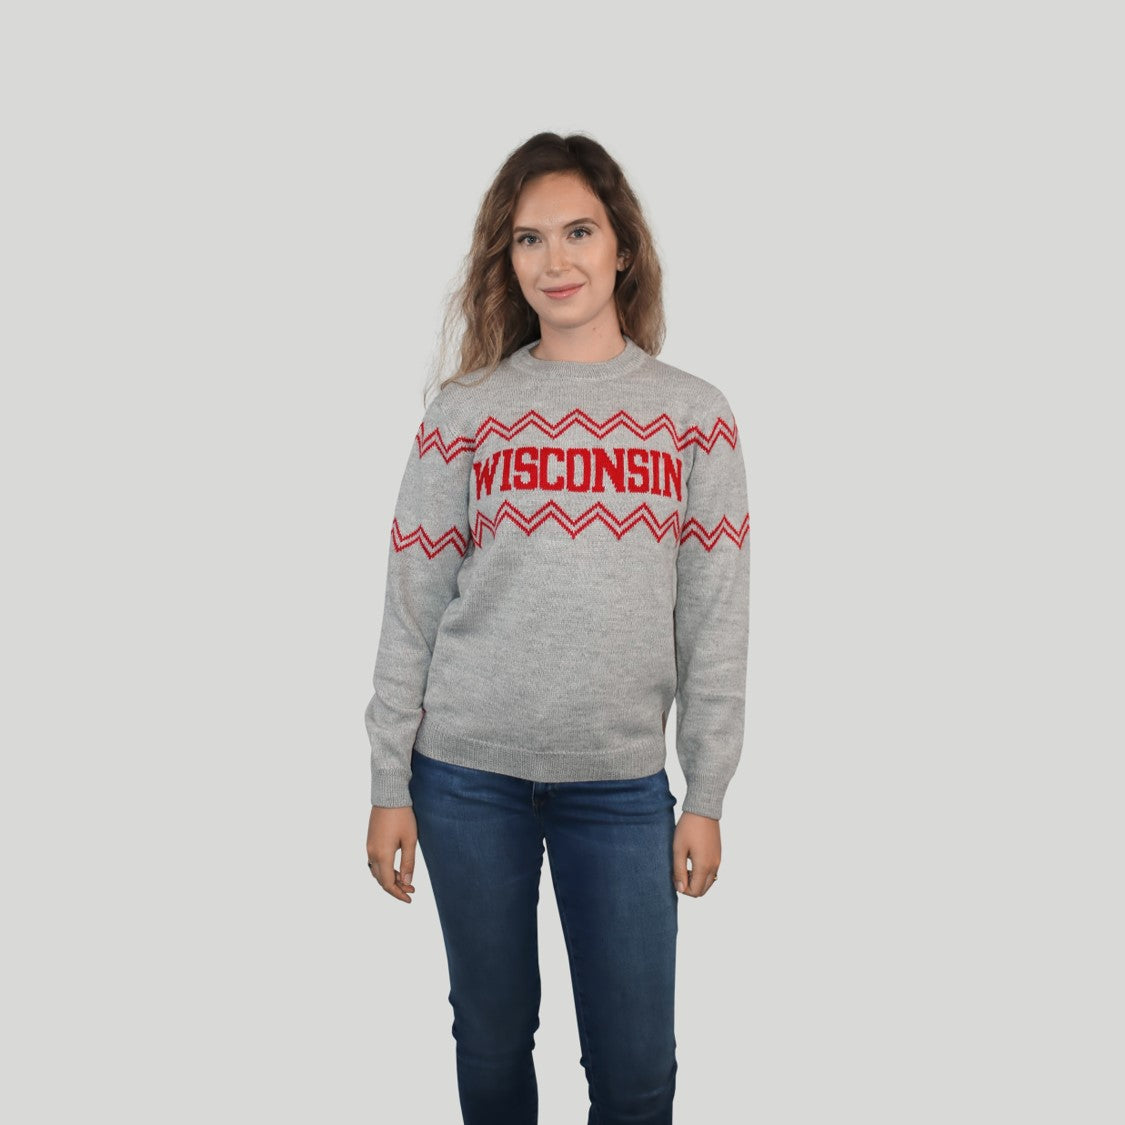 BUNDLE Wisconsin Crew Neck Sweaters